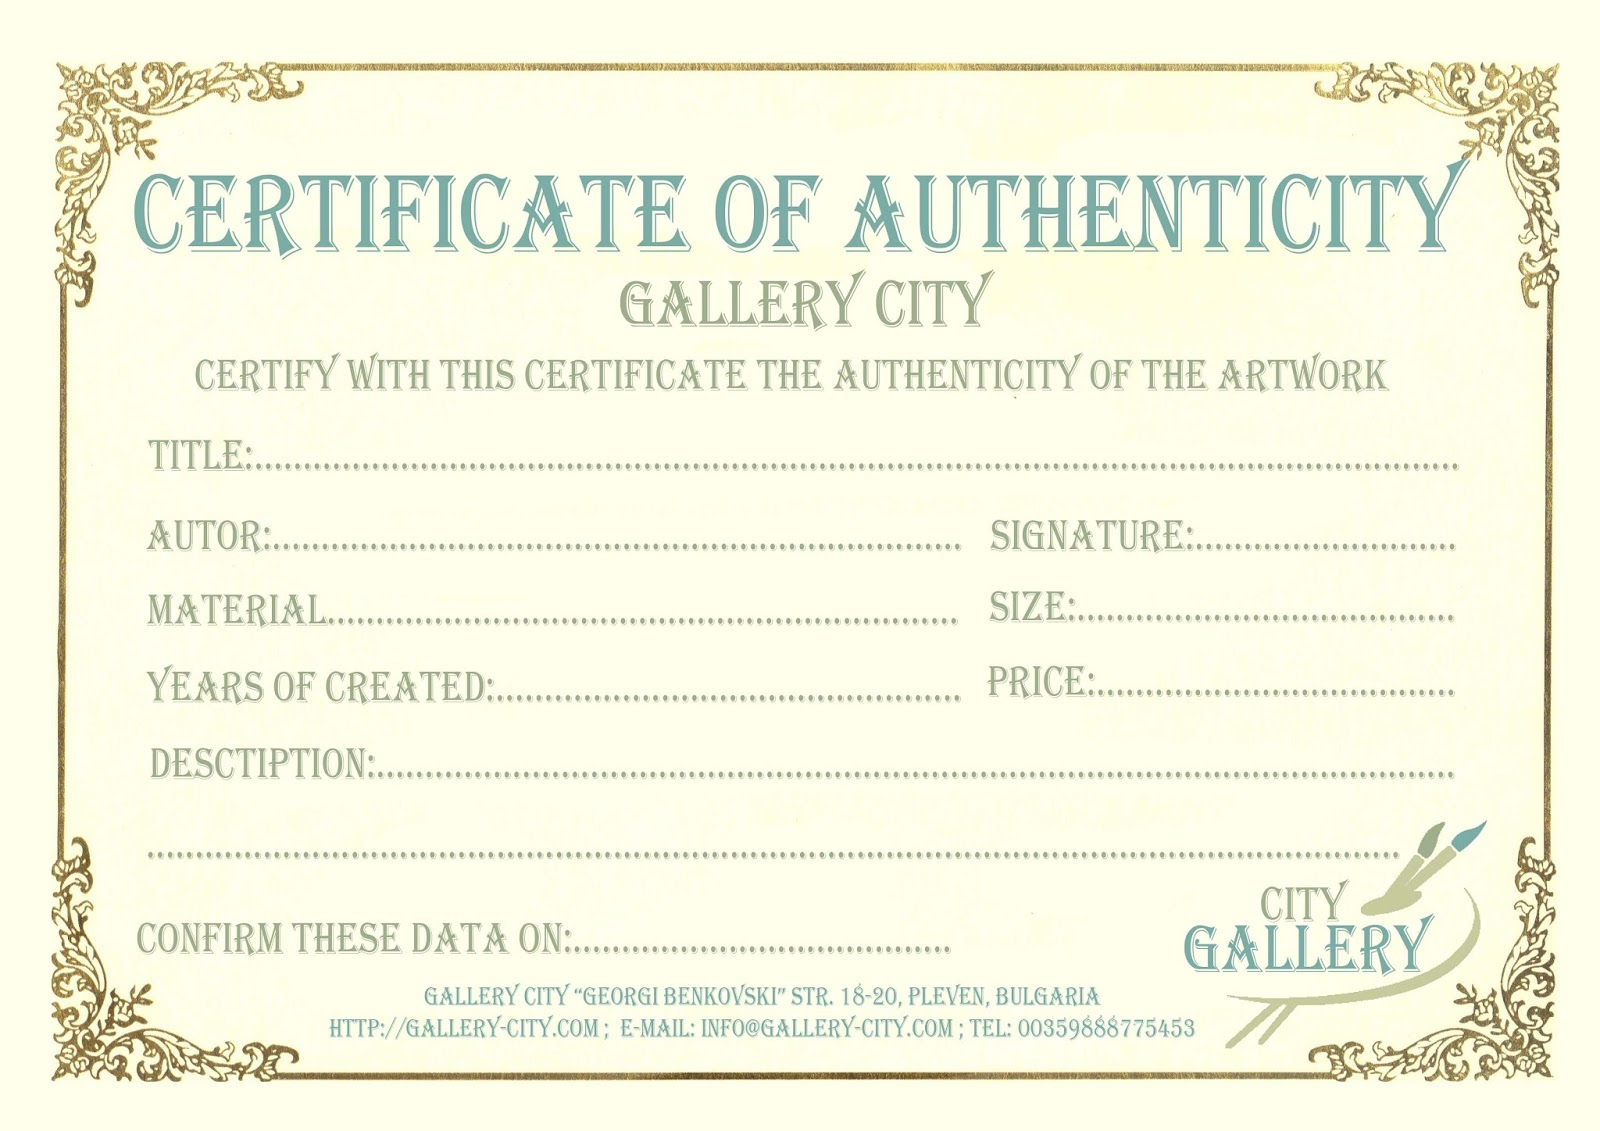 statement of authenticity template - certificate of authenticity for artwork free download